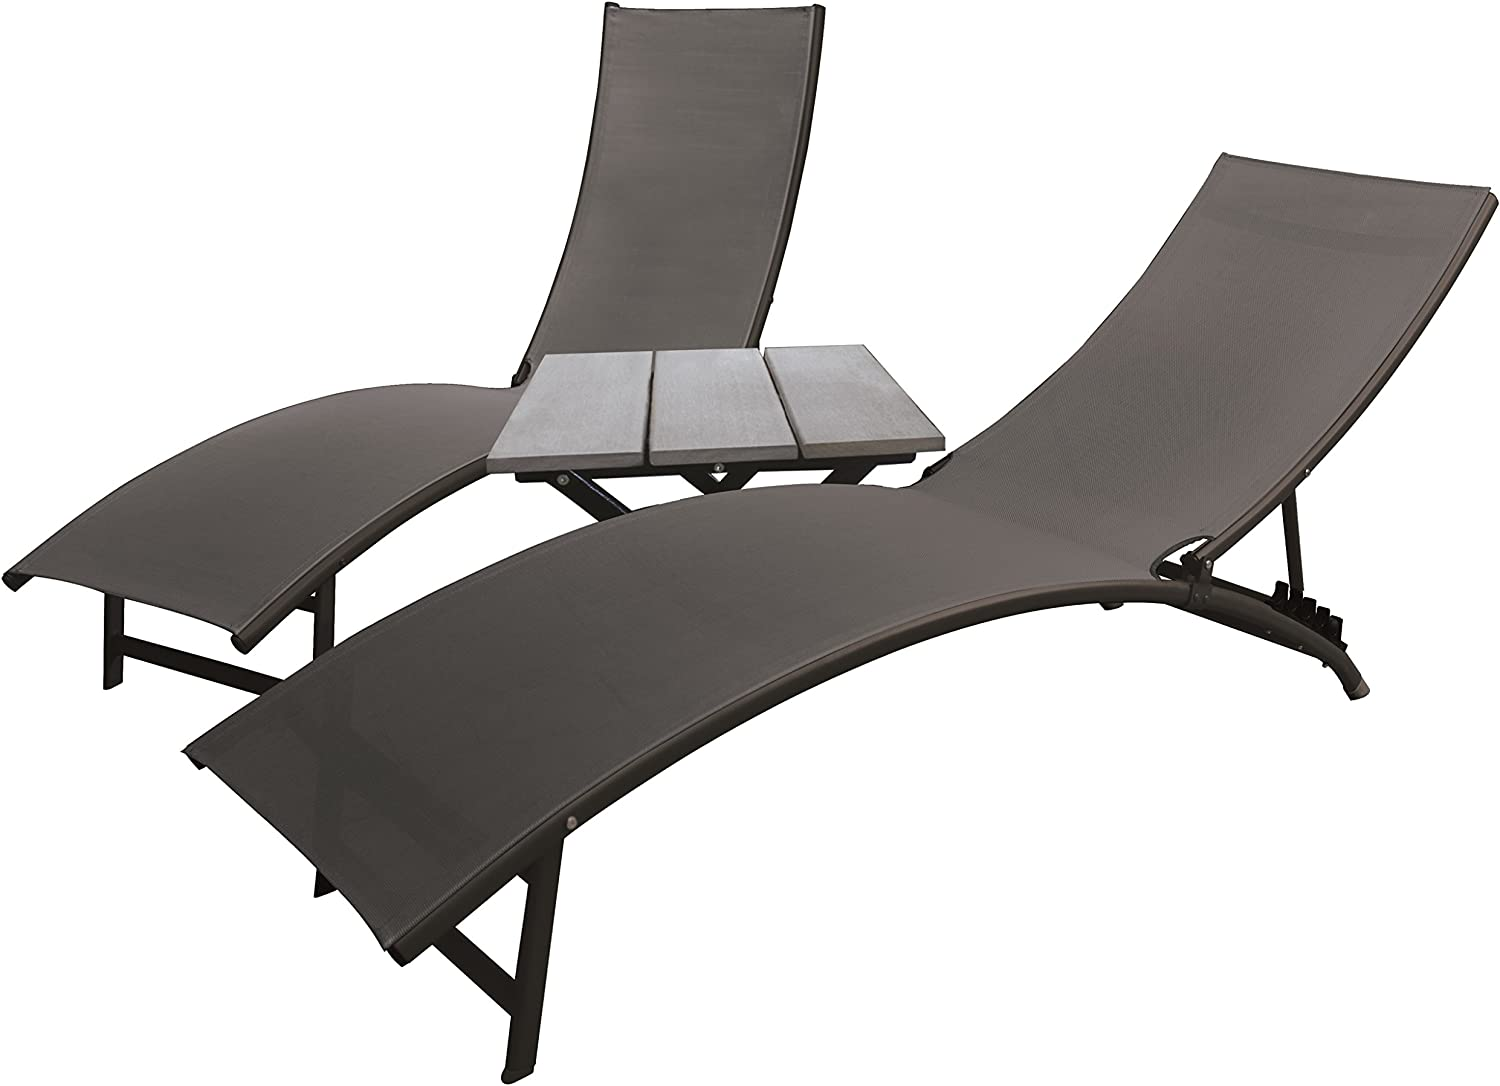 Vivere Midtown Lounger 3 Piece Aluminum Set, Black Chrome